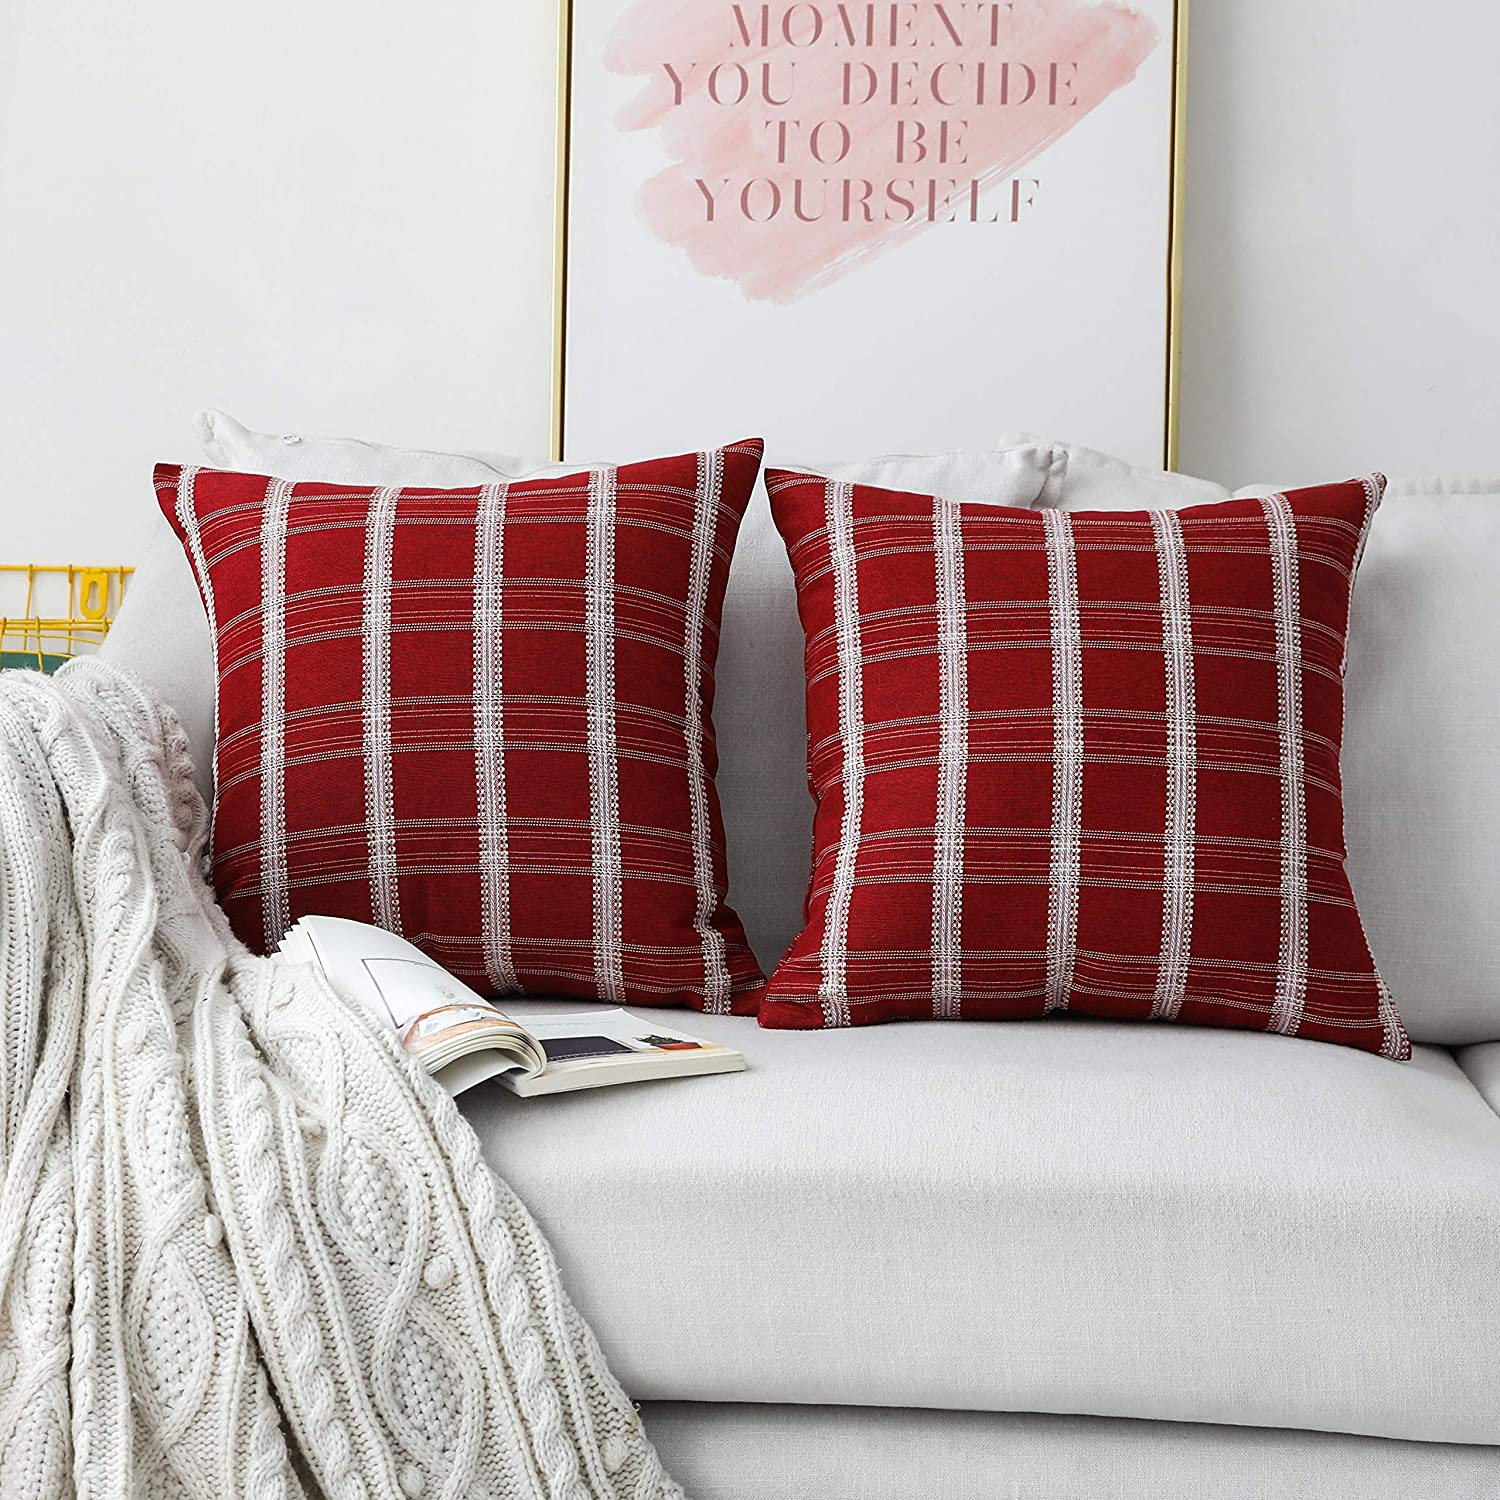 Home Brilliant Red Pillow Shams Large Bed Decorations Plaid Square Throw Pillow Covers for Couch Floor Woman Wedding Party, Pack of 2, 24 x 24 inches(60 x 60 cm), Red Burgundy